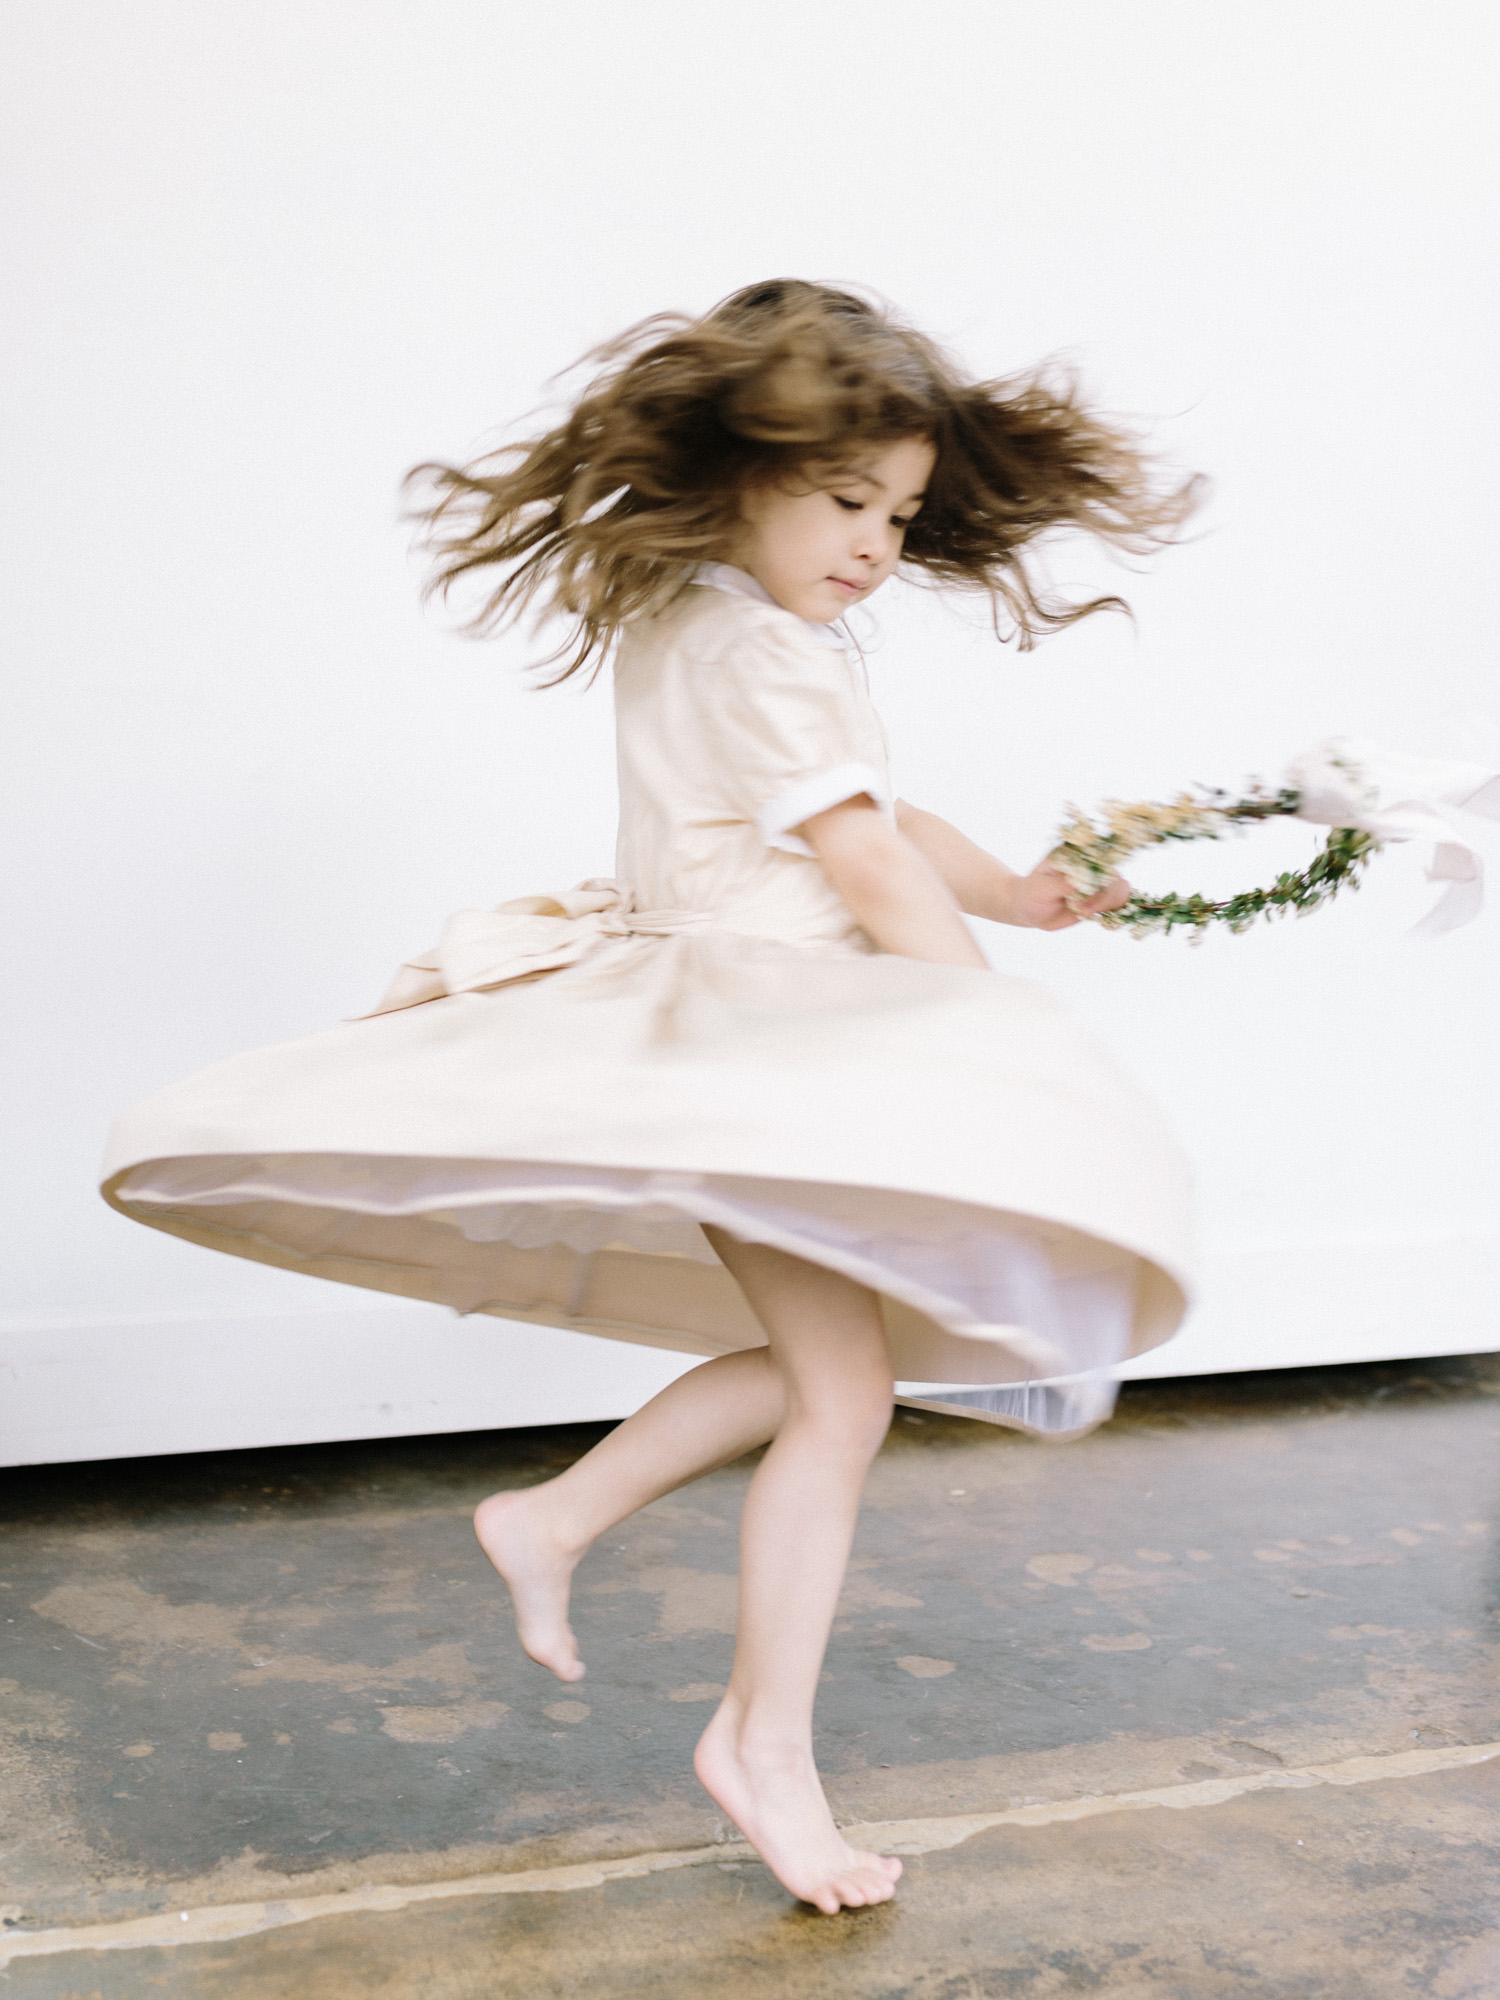 A young flower girl twirls in her dress while holding her spring flower crown